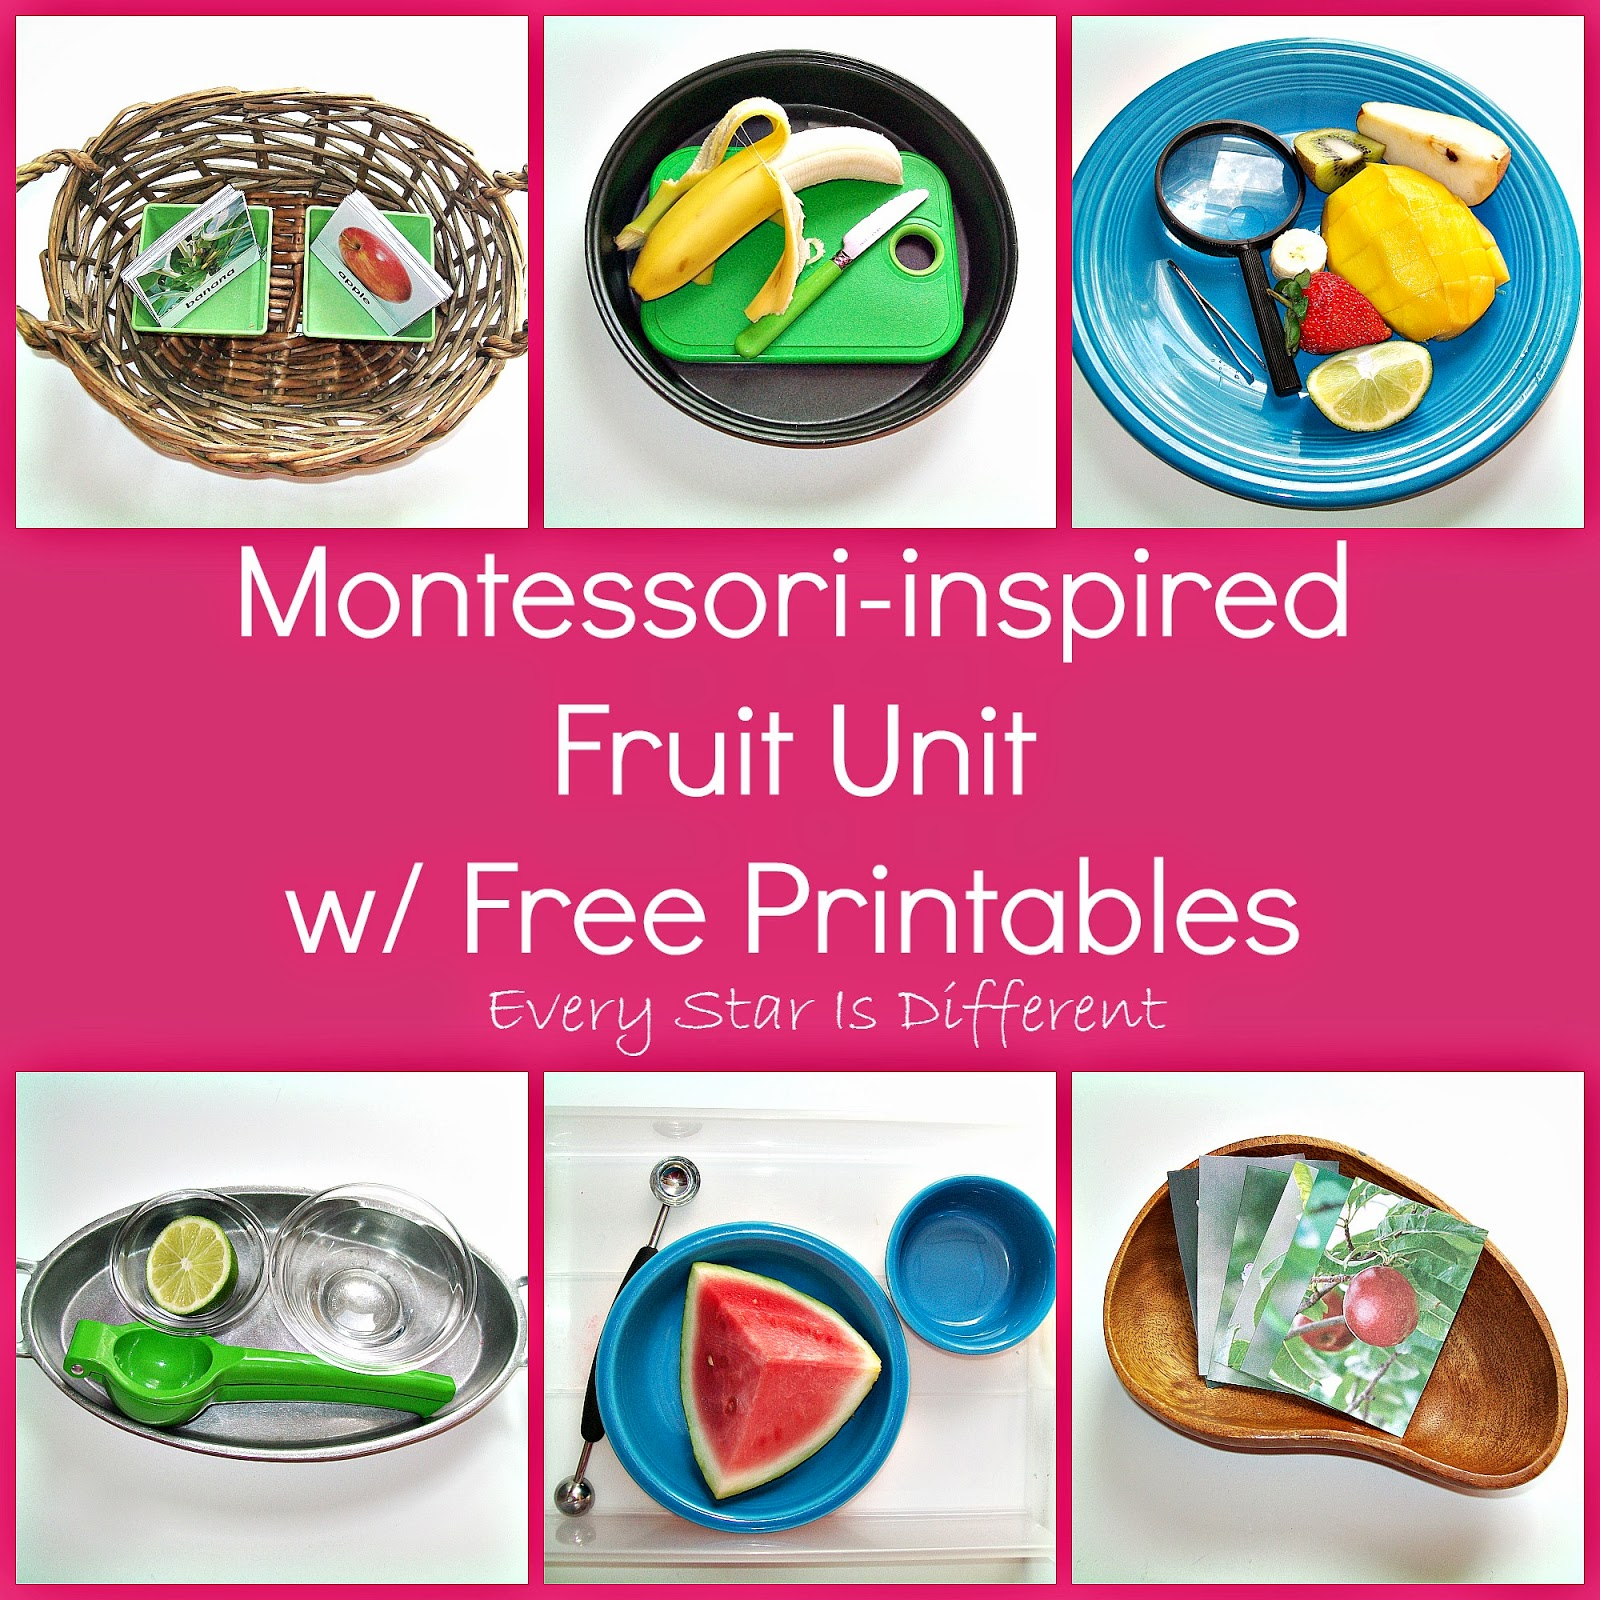 Montessori-inspired Fruit Unit with Free Printables